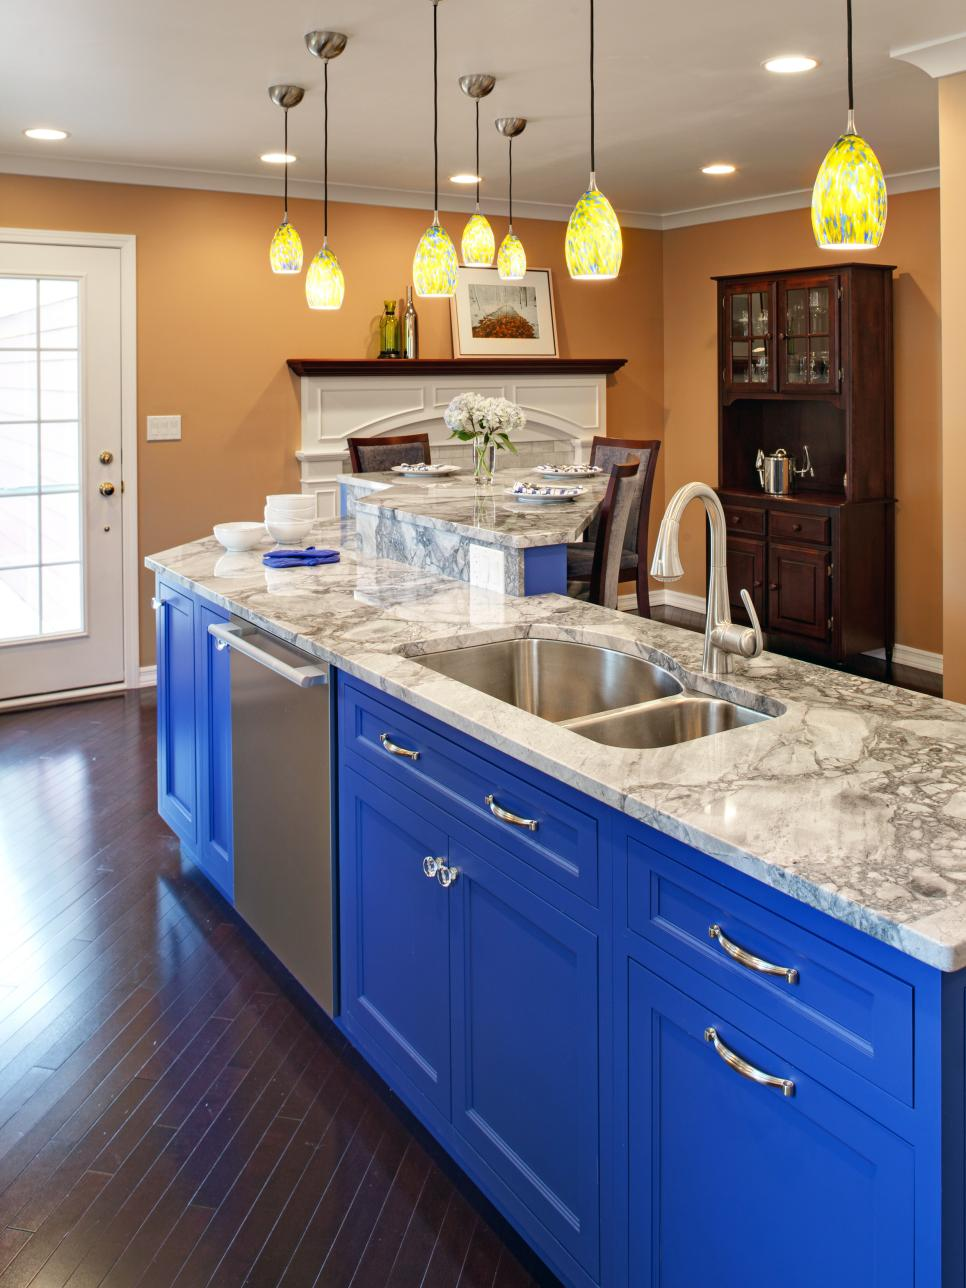 hgtvs best pictures of kitchen cabinet color ideas from top designers hgtv. beautiful ideas. Home Design Ideas